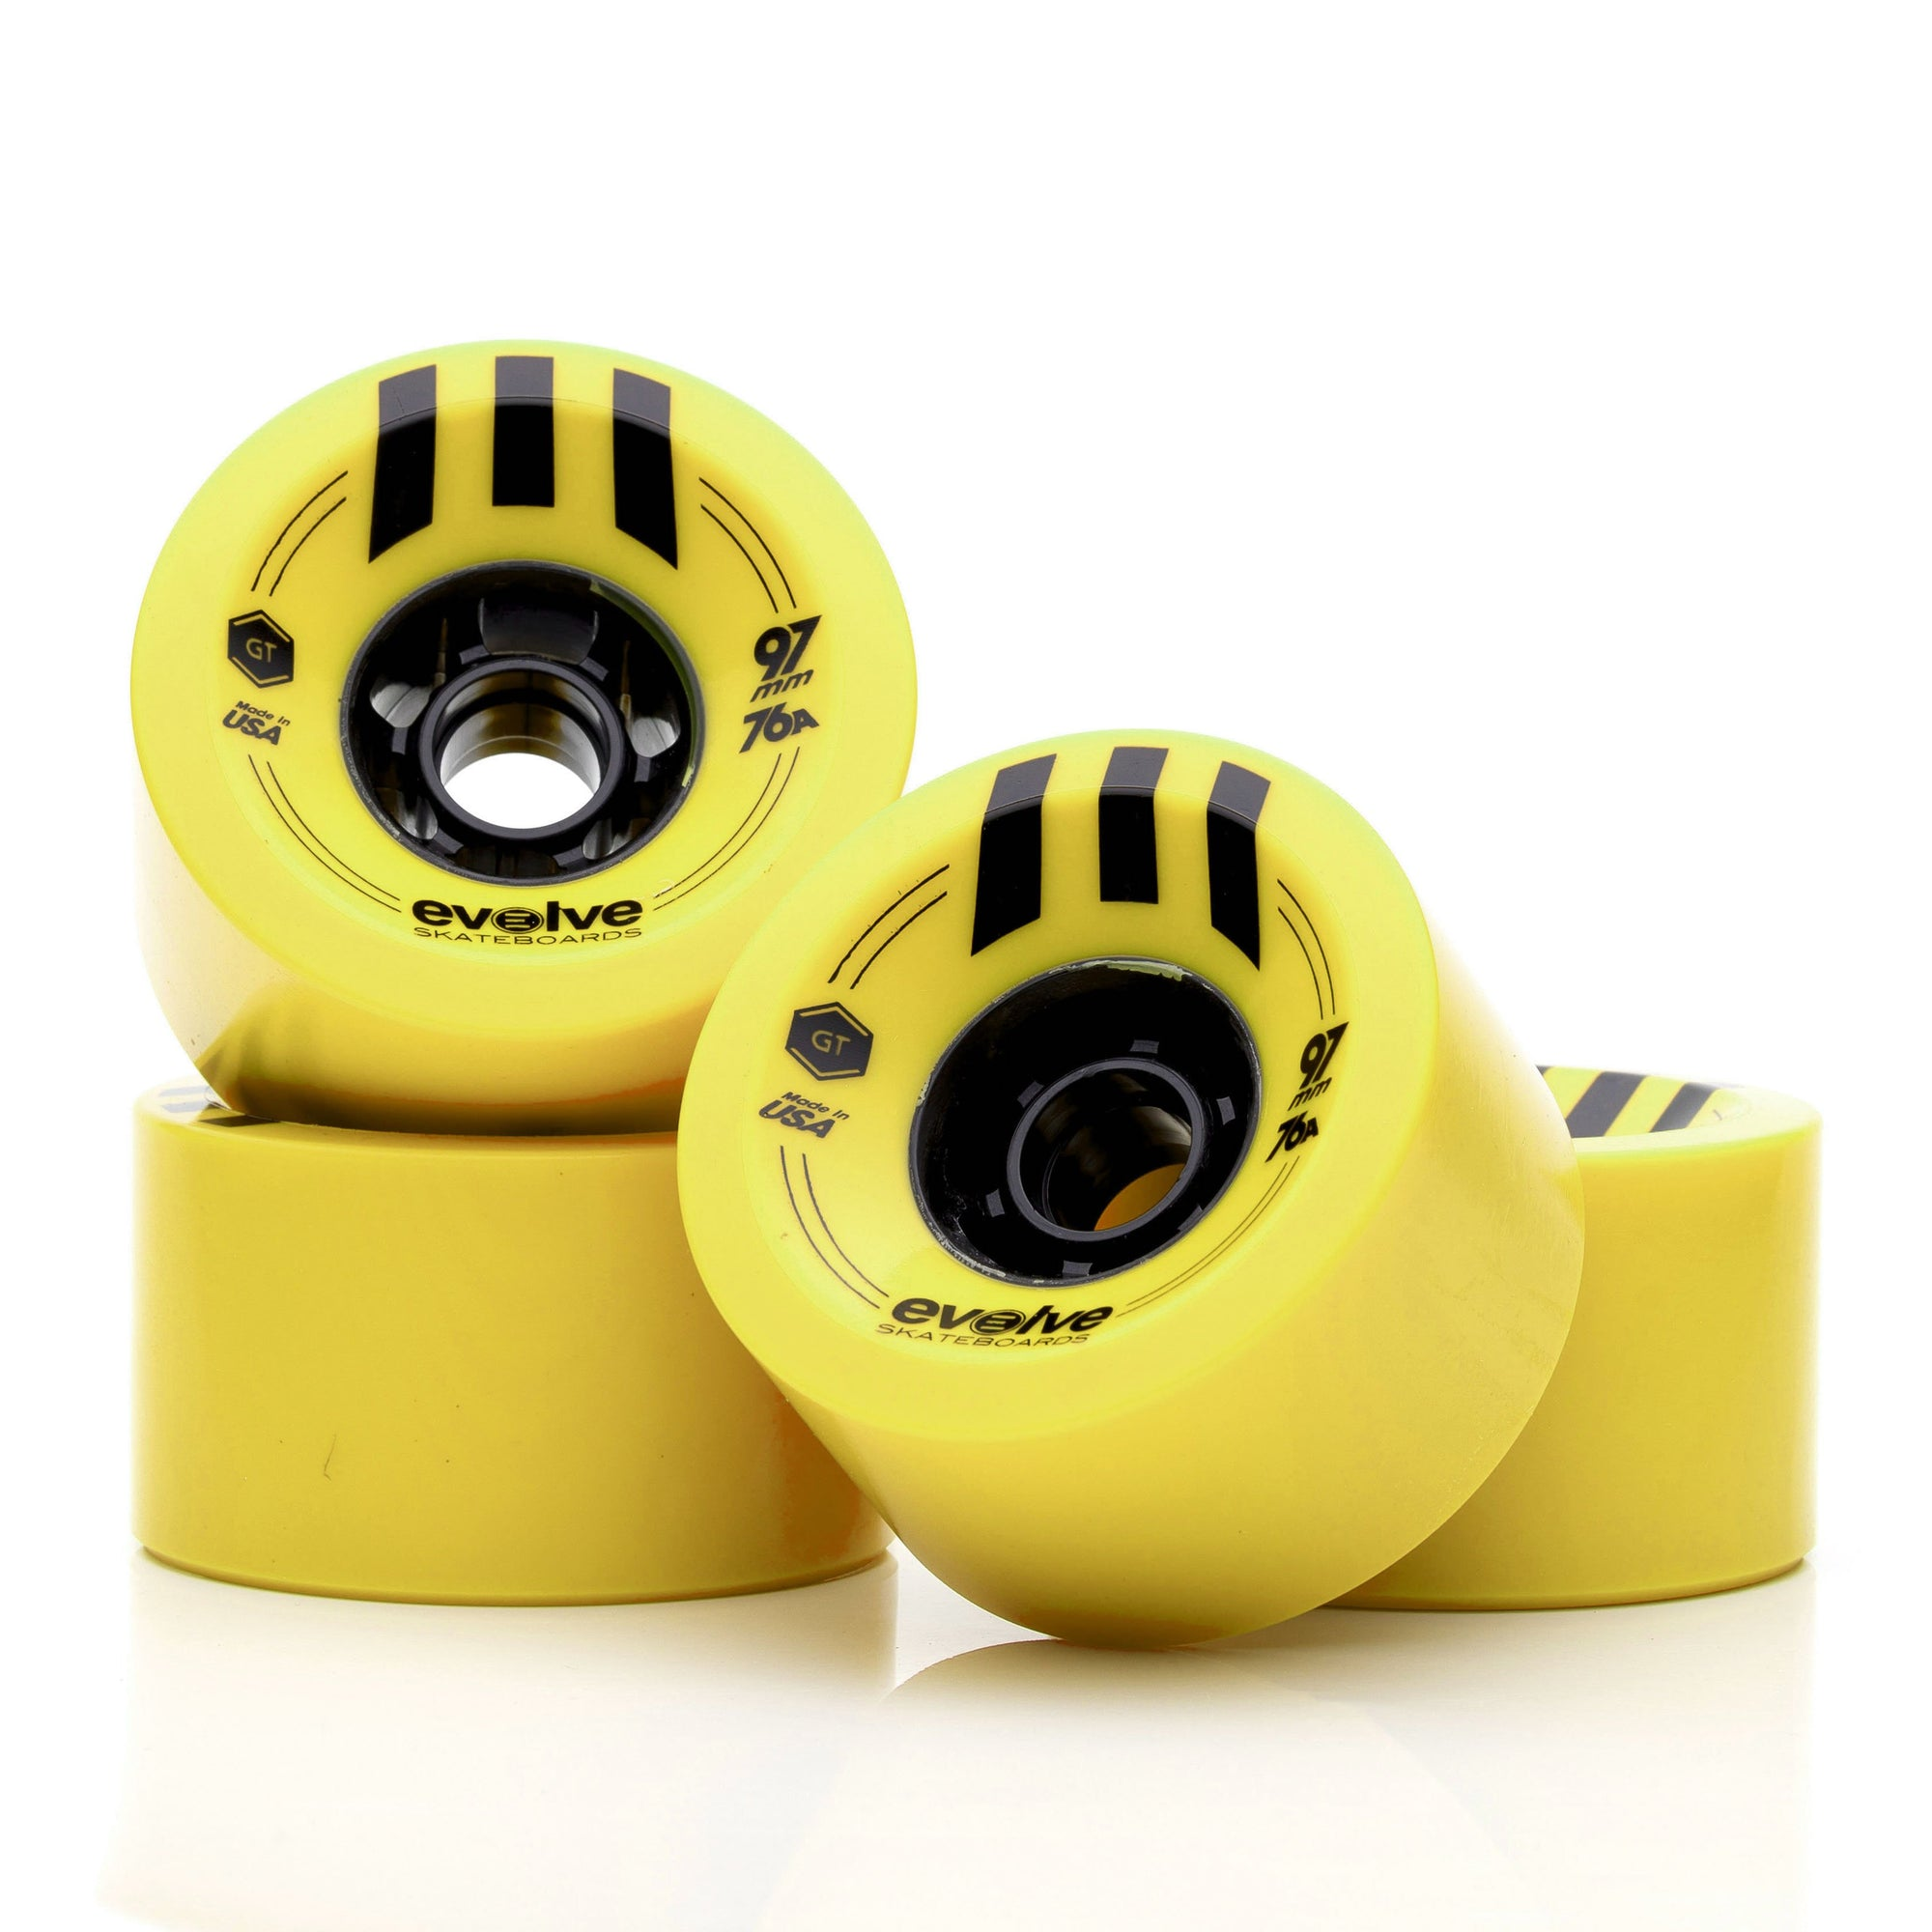 97mm-evolve-gtr-wheels-75a-yellow-32t-gear